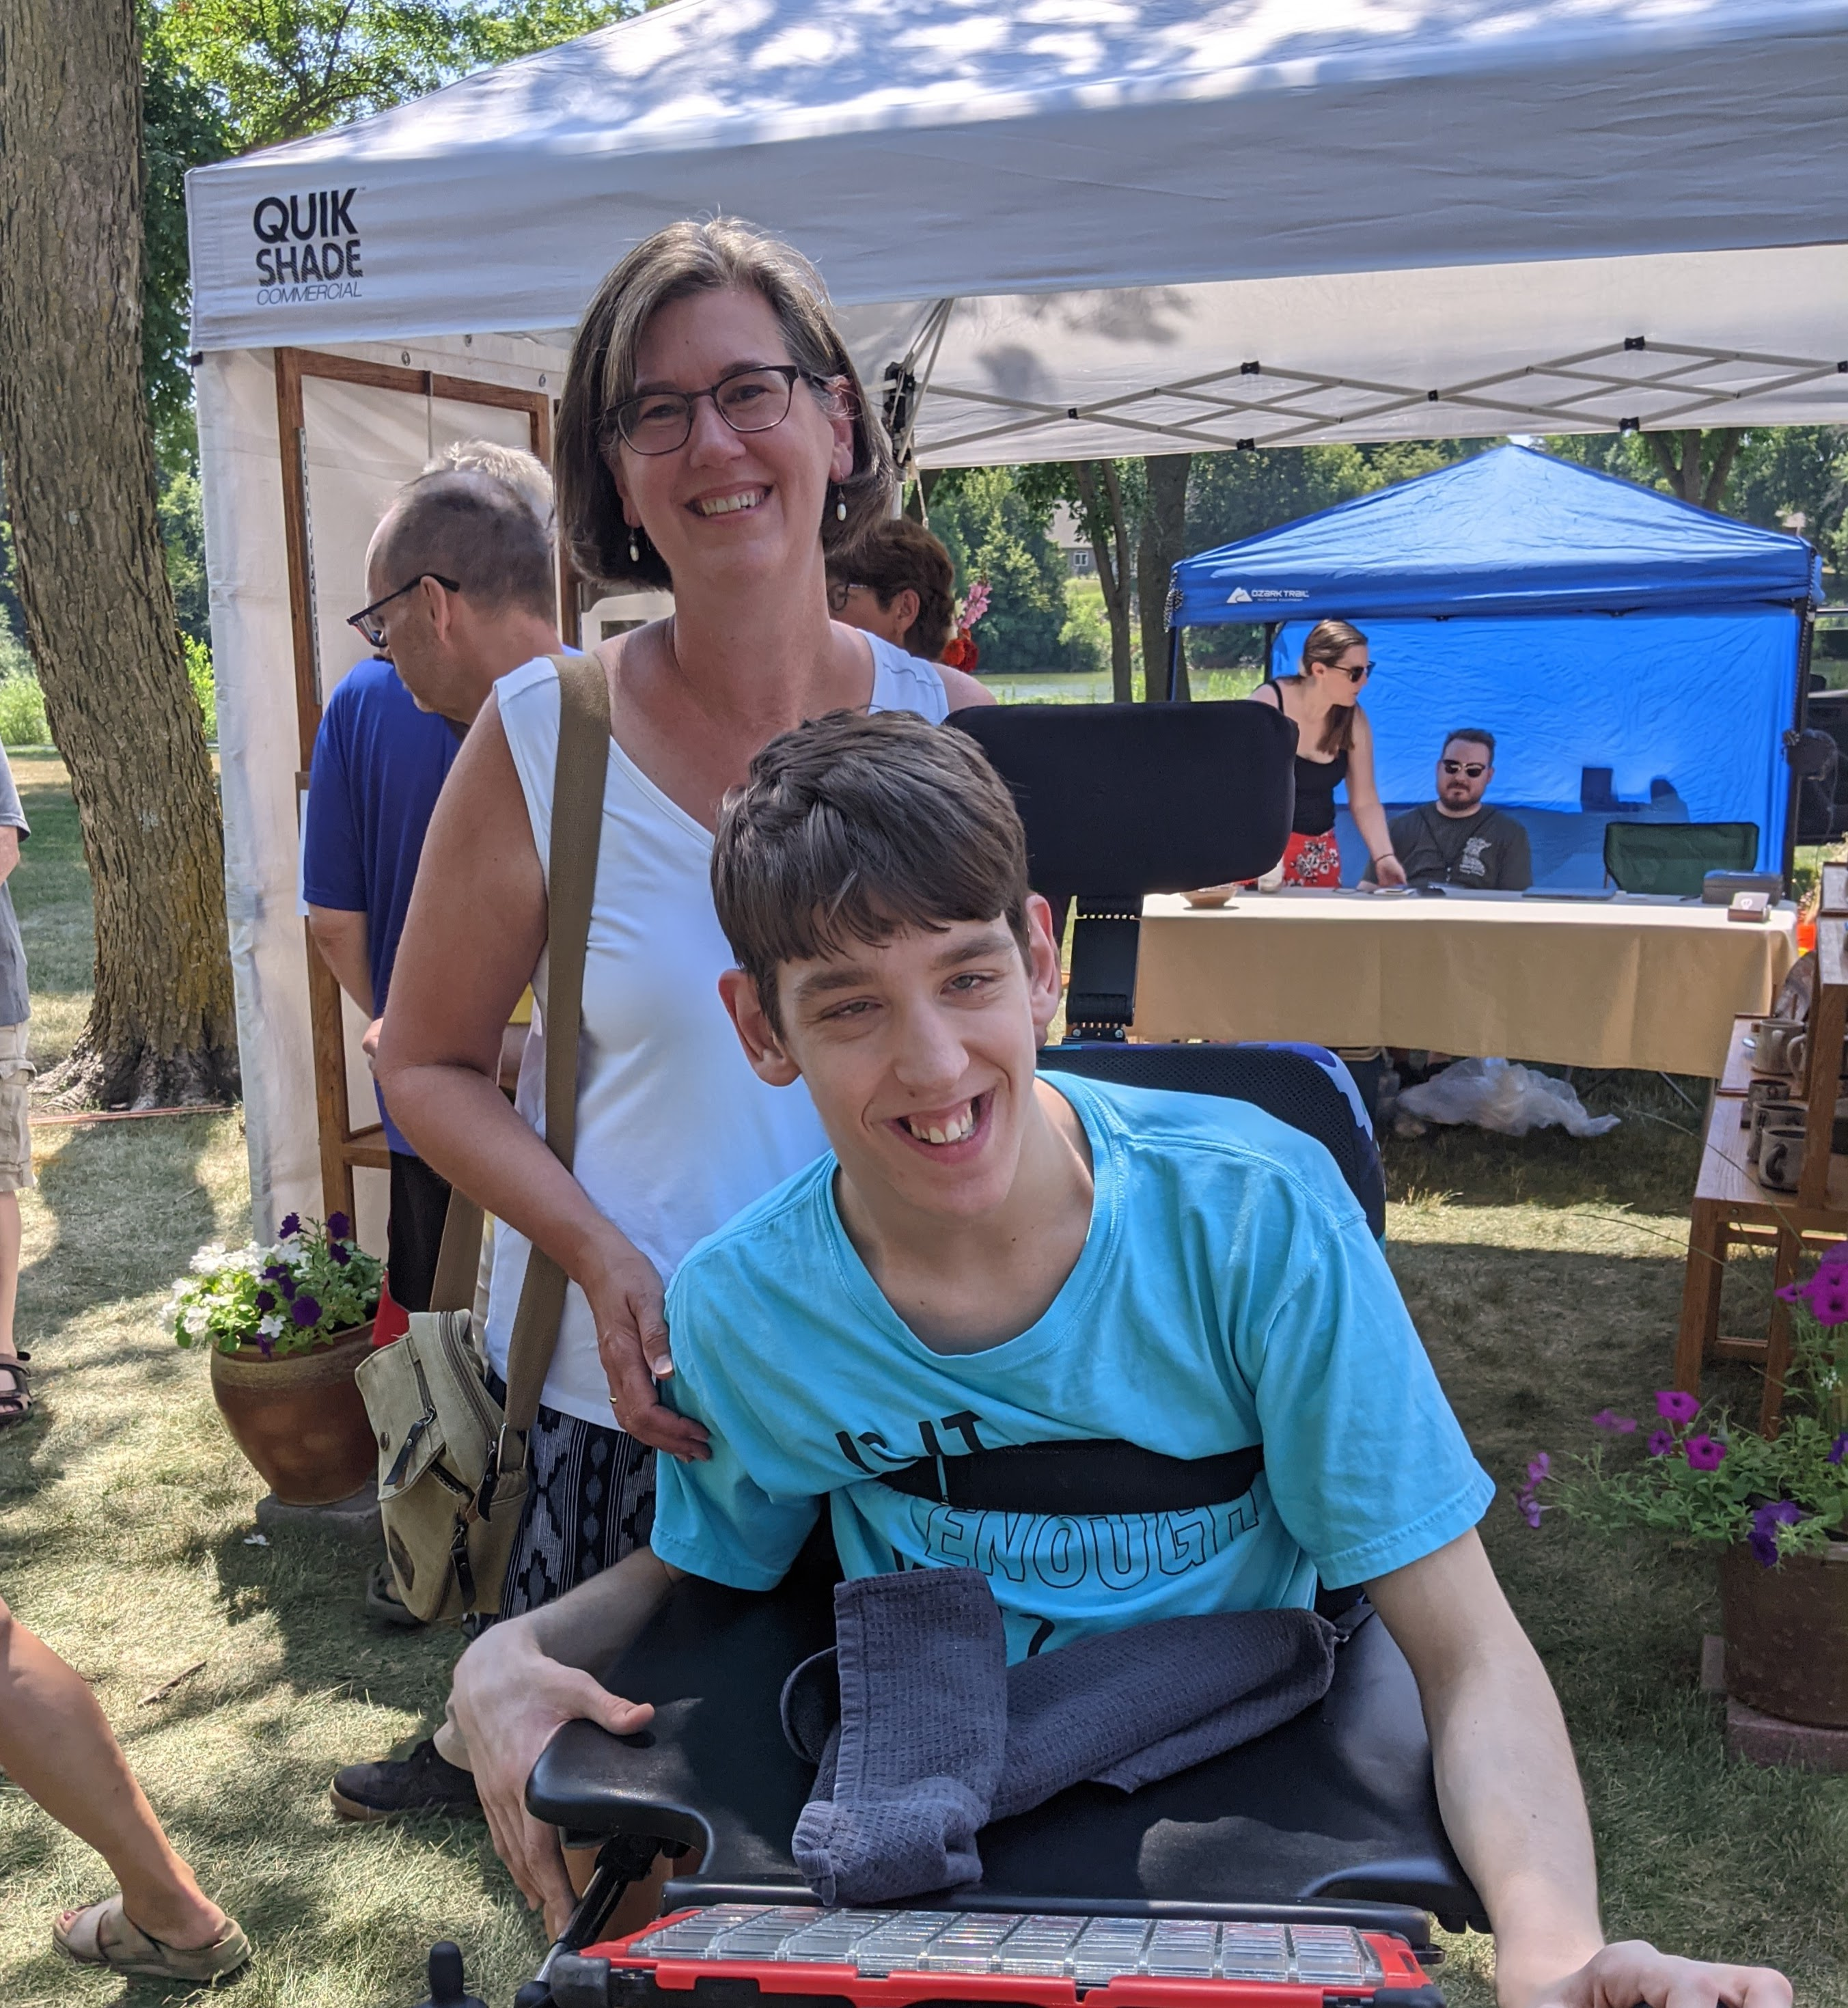 Justin in wheelchair, his mom standing behind, both smiling, people in background looking at pottery booth